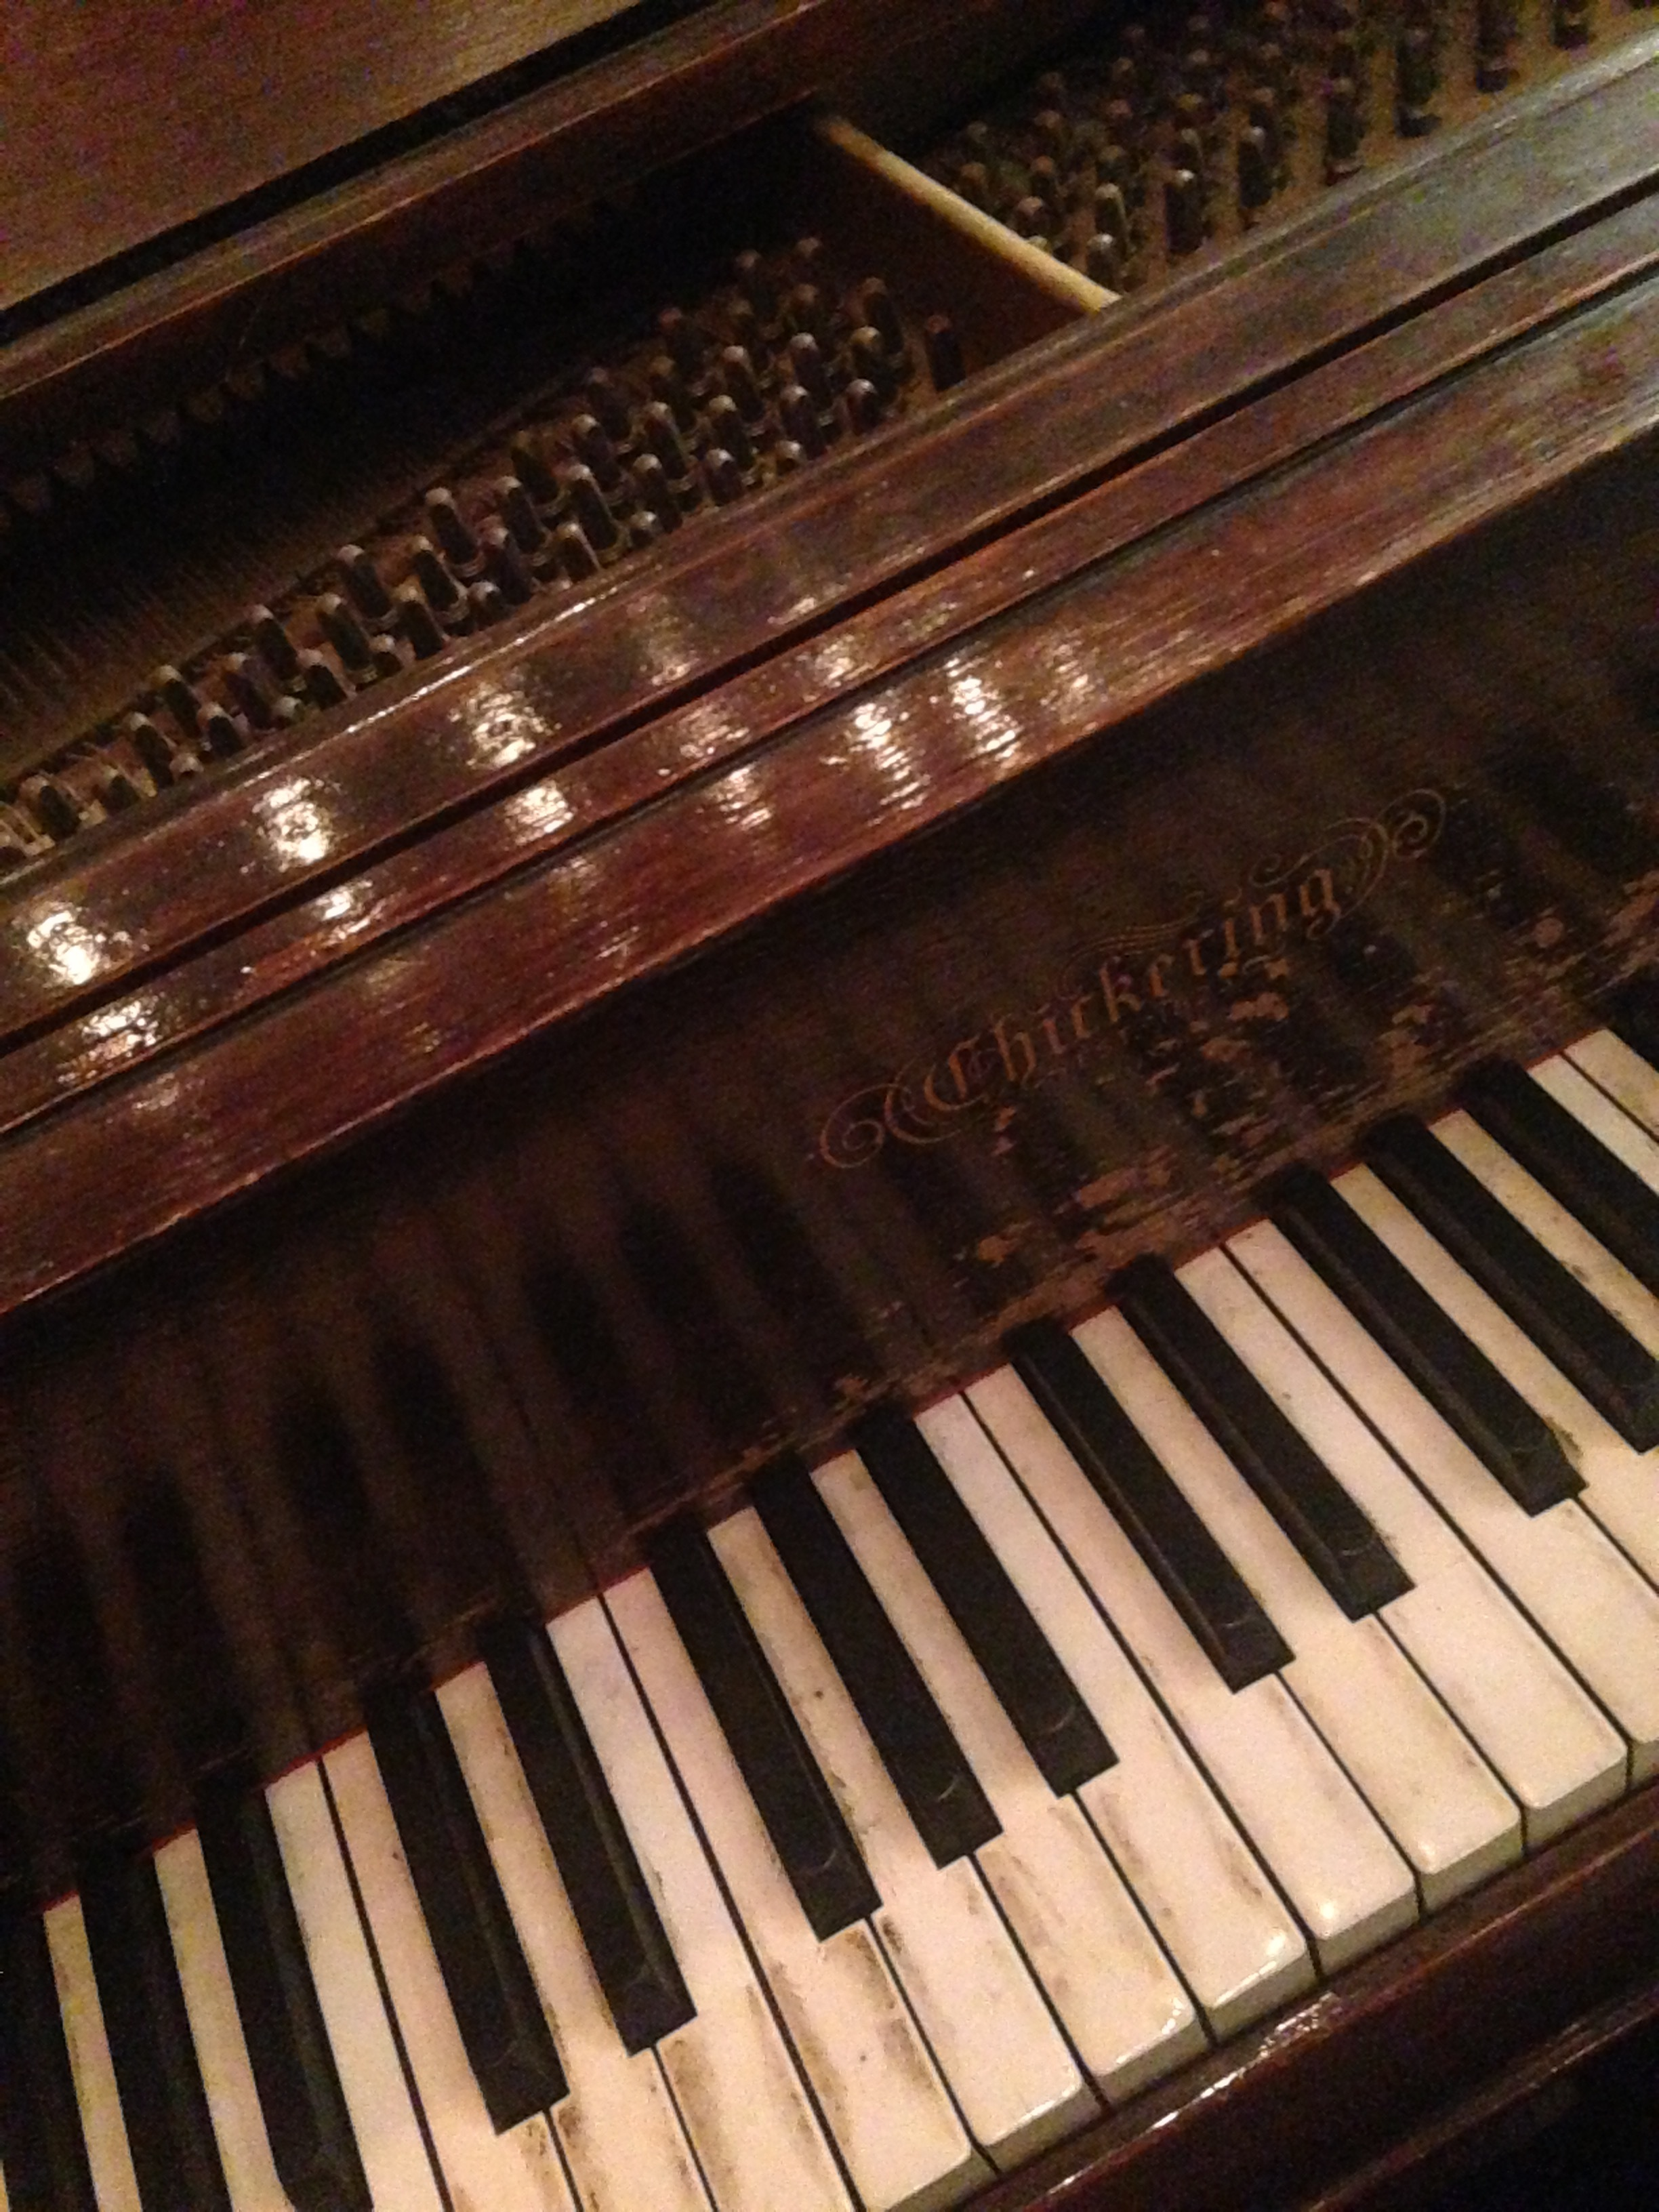 My baby (grand) - 1926 Chickering - weathered and faithful.